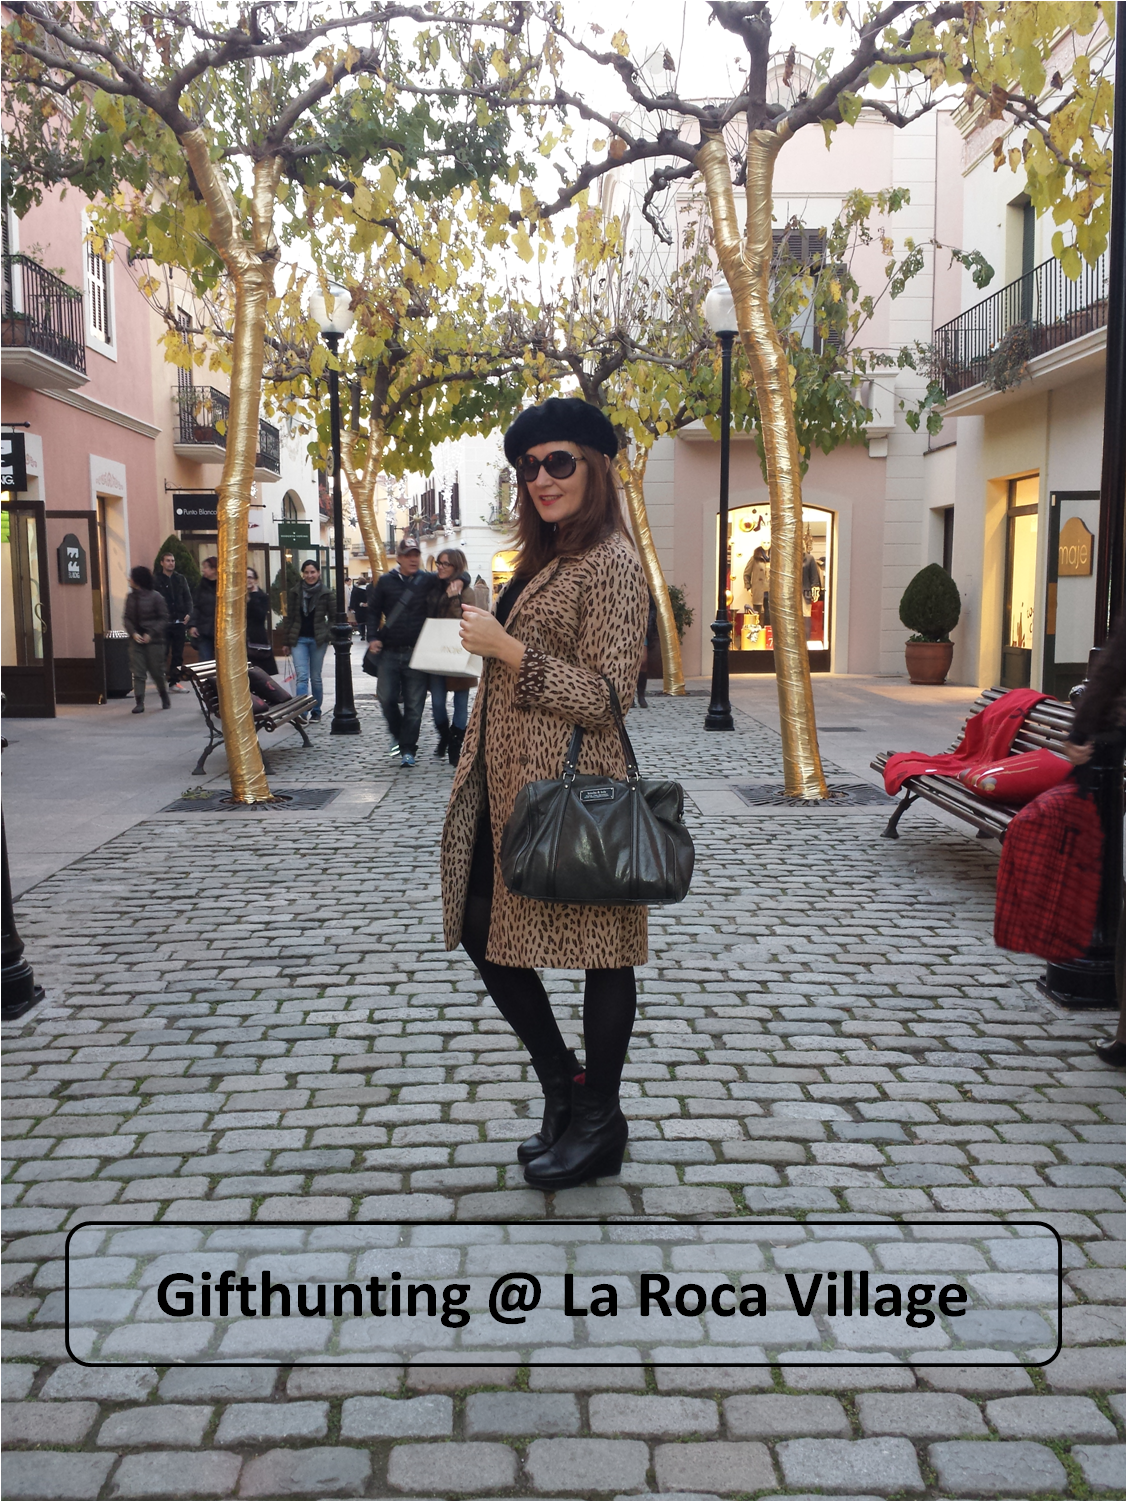 la roca village outlet gifthunting share our secret vip room